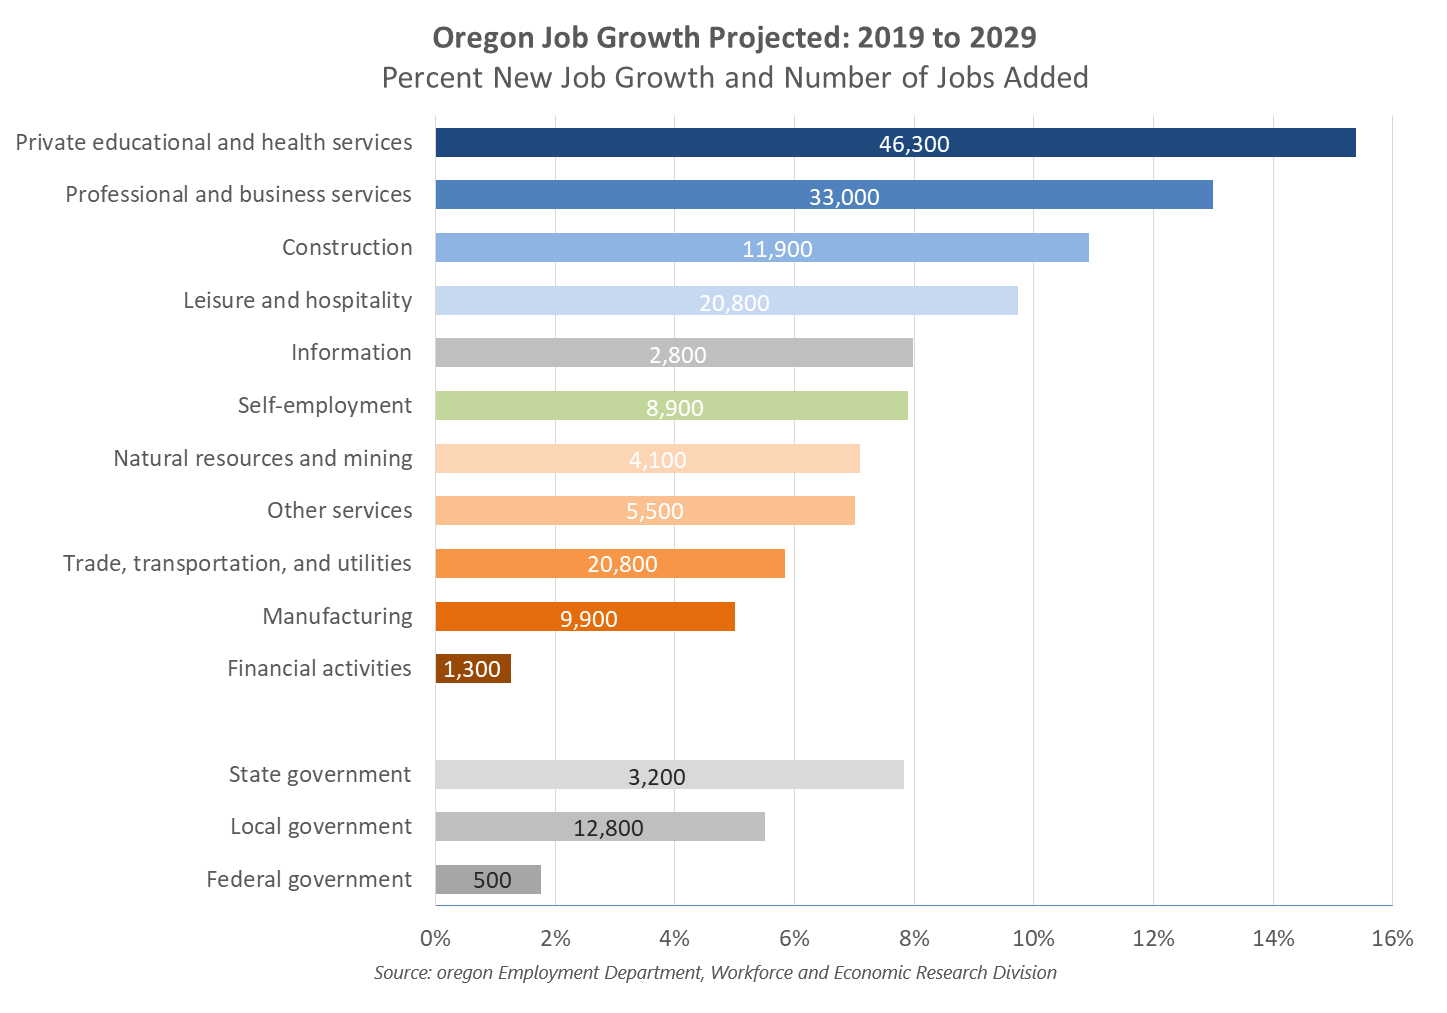 Workforce Projections 2019 to 2029